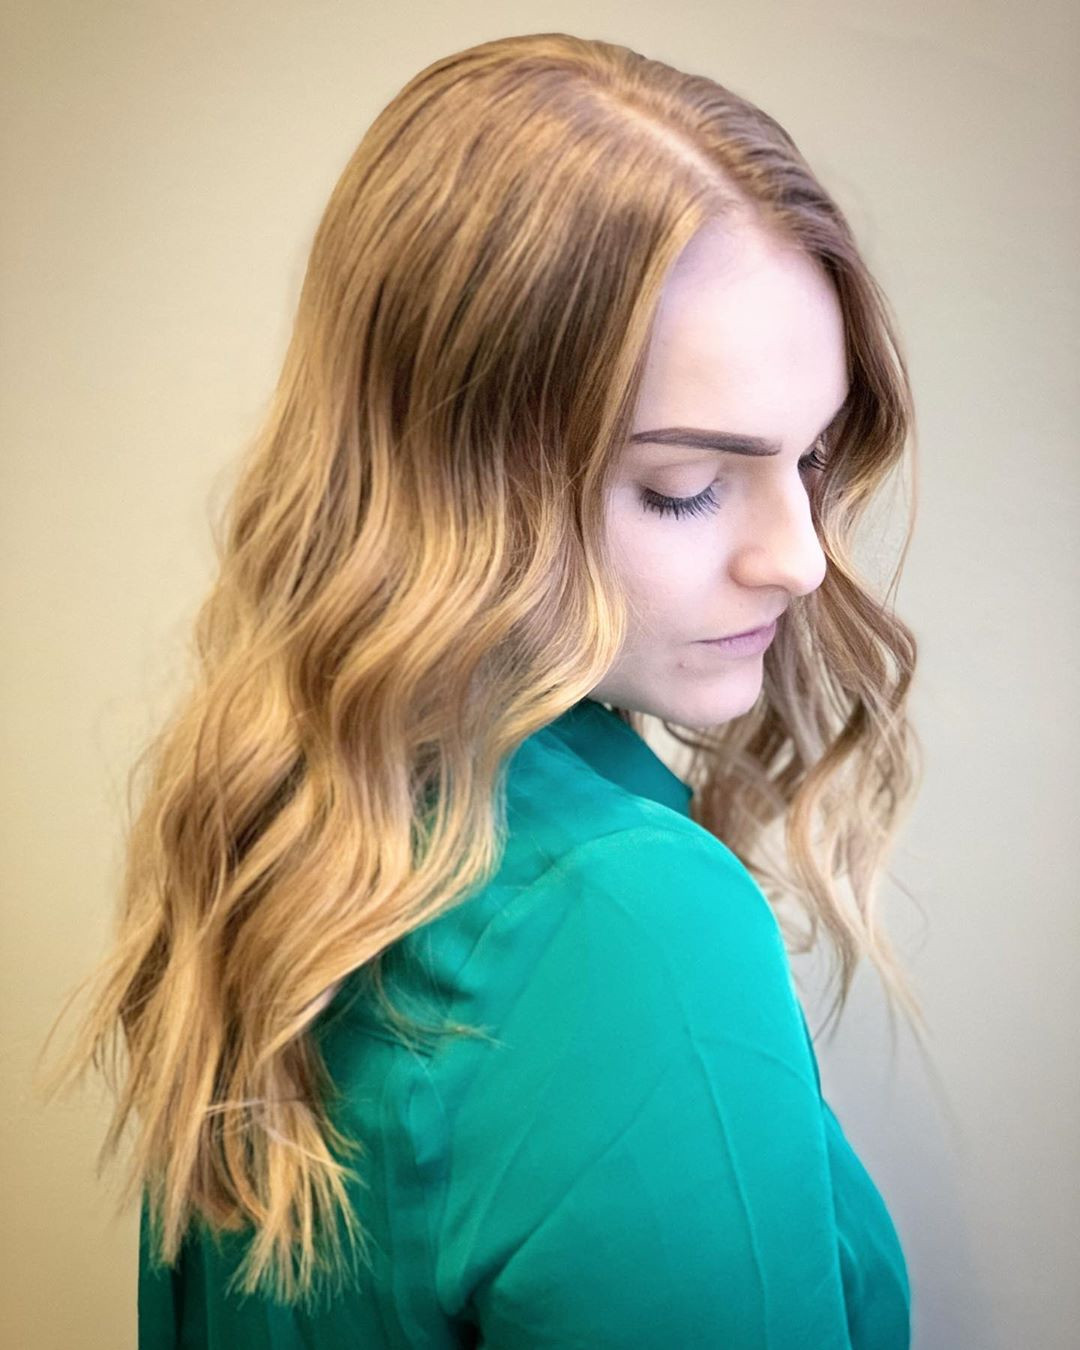 46 Trendy Light Brown Hairstyles Color To Try For A New Look,light brown hair with lowlights,light brown hair color pictures  #balayage #blondebalayage #hairpainting #hairpainters #bronde #brondebalayage #highlights #ombrehair